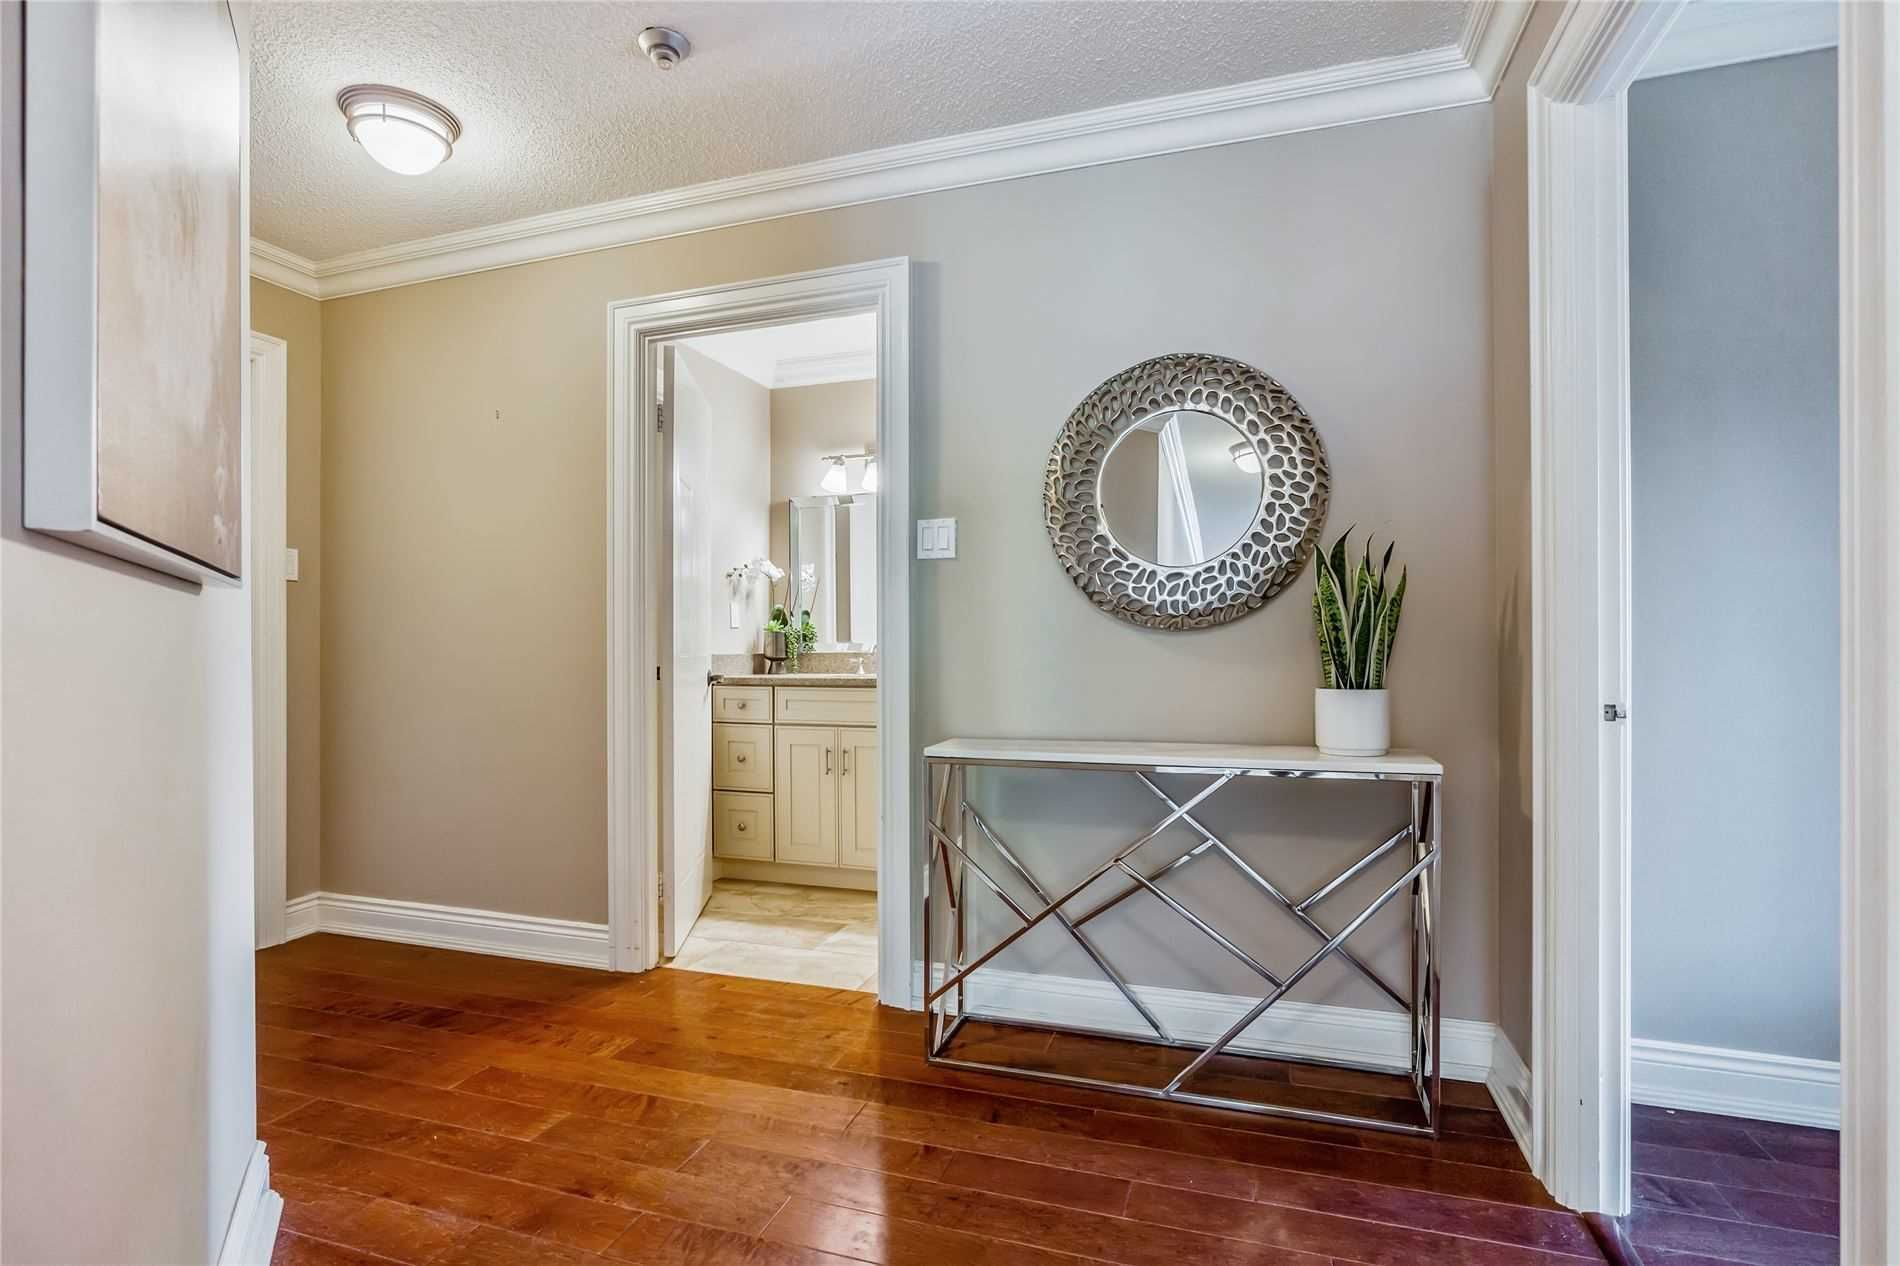 1880 Valley Farm Rd, unit 120 for sale in Toronto - image #2